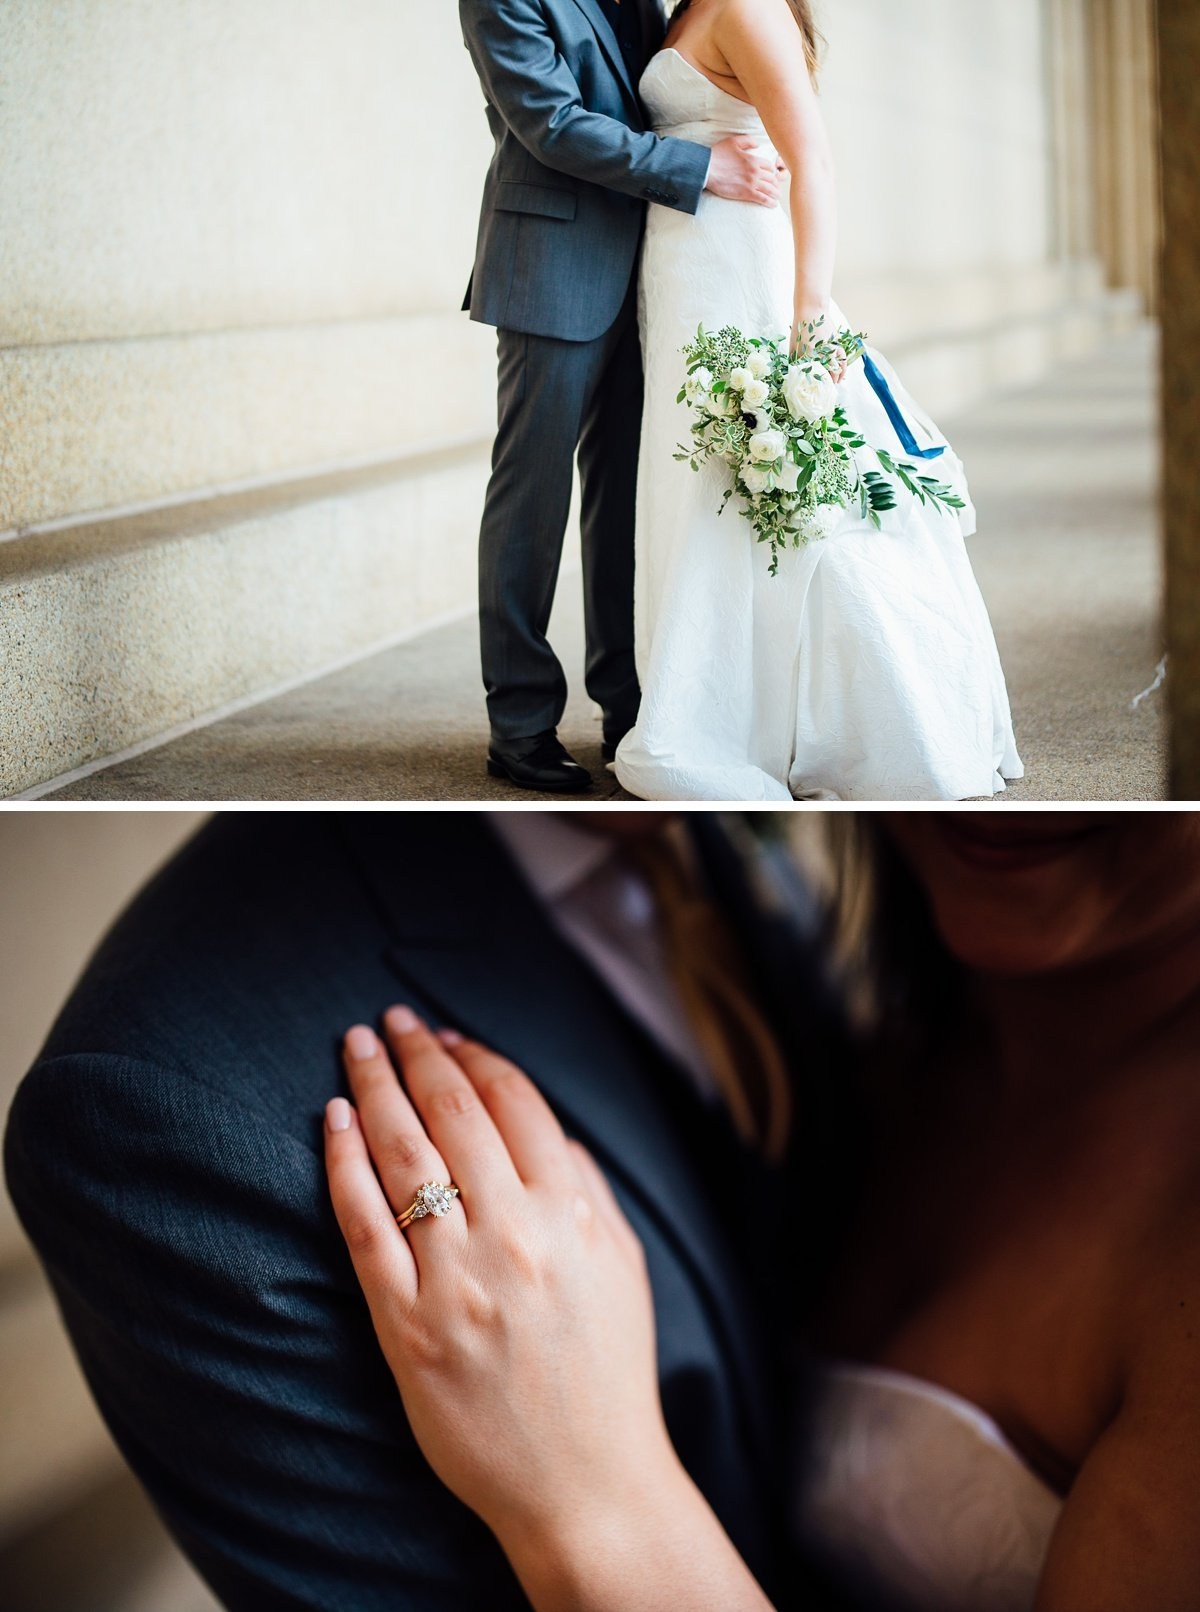 intimate-wedding-details Christ The King Wedding | Loveless Barn | Nina + Evan